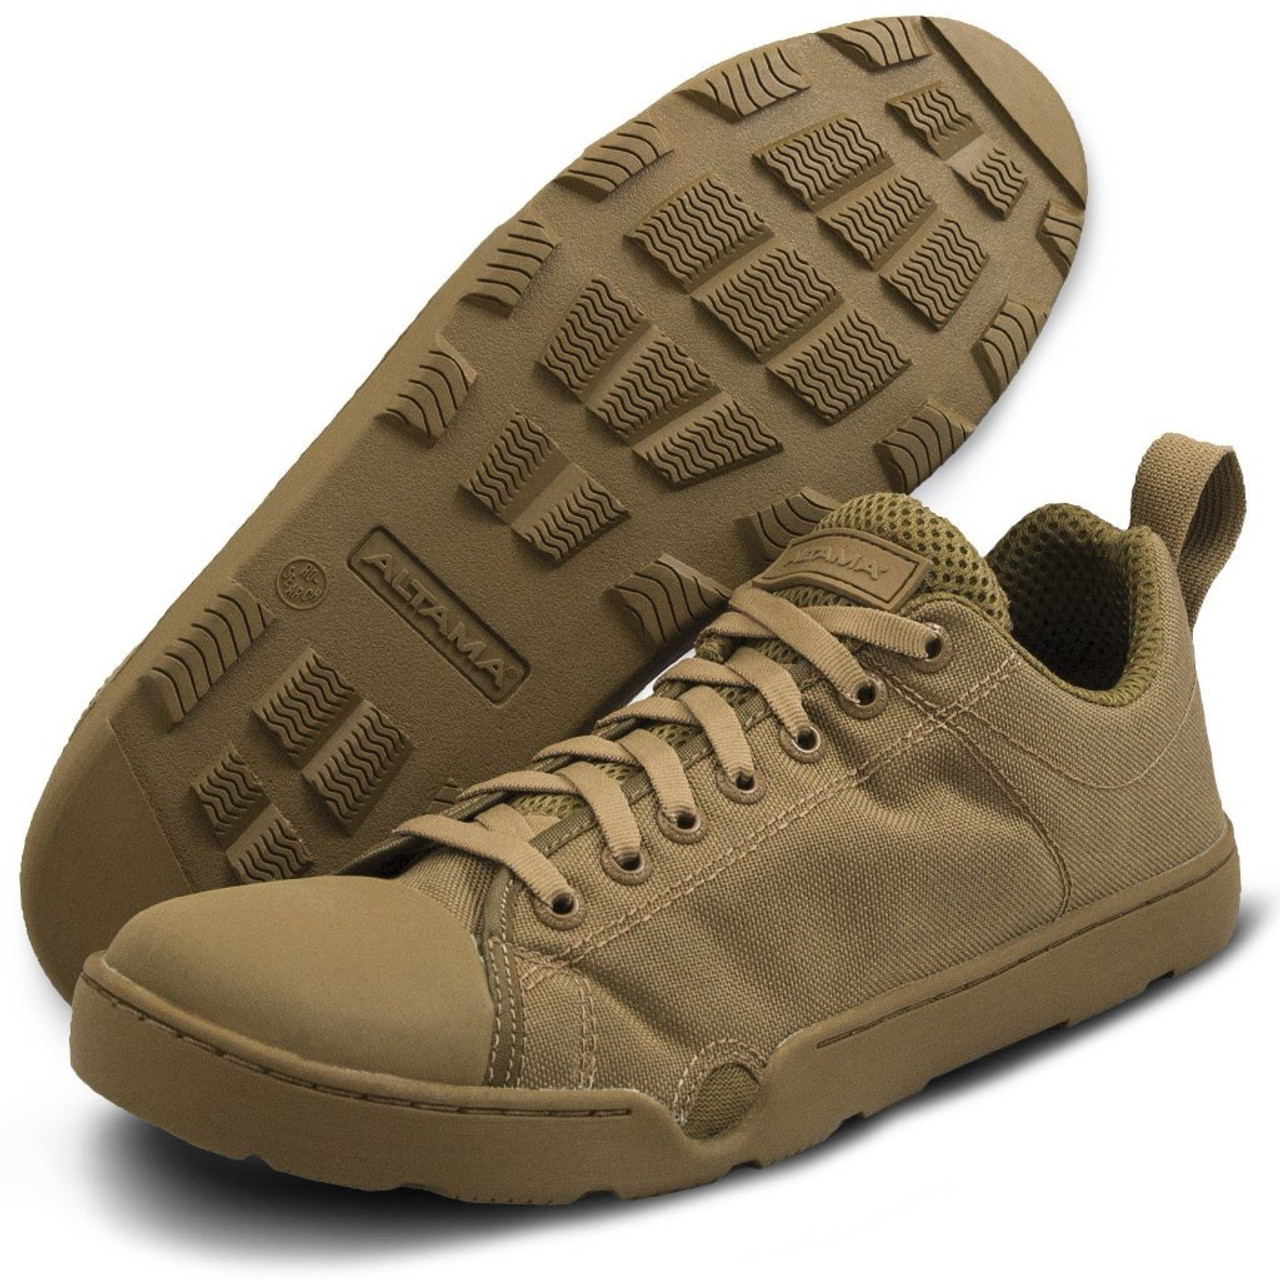 ALTAMA OTB MARITIME ASSAULT LOW TACTICAL SHOES 335003 / COYOTE